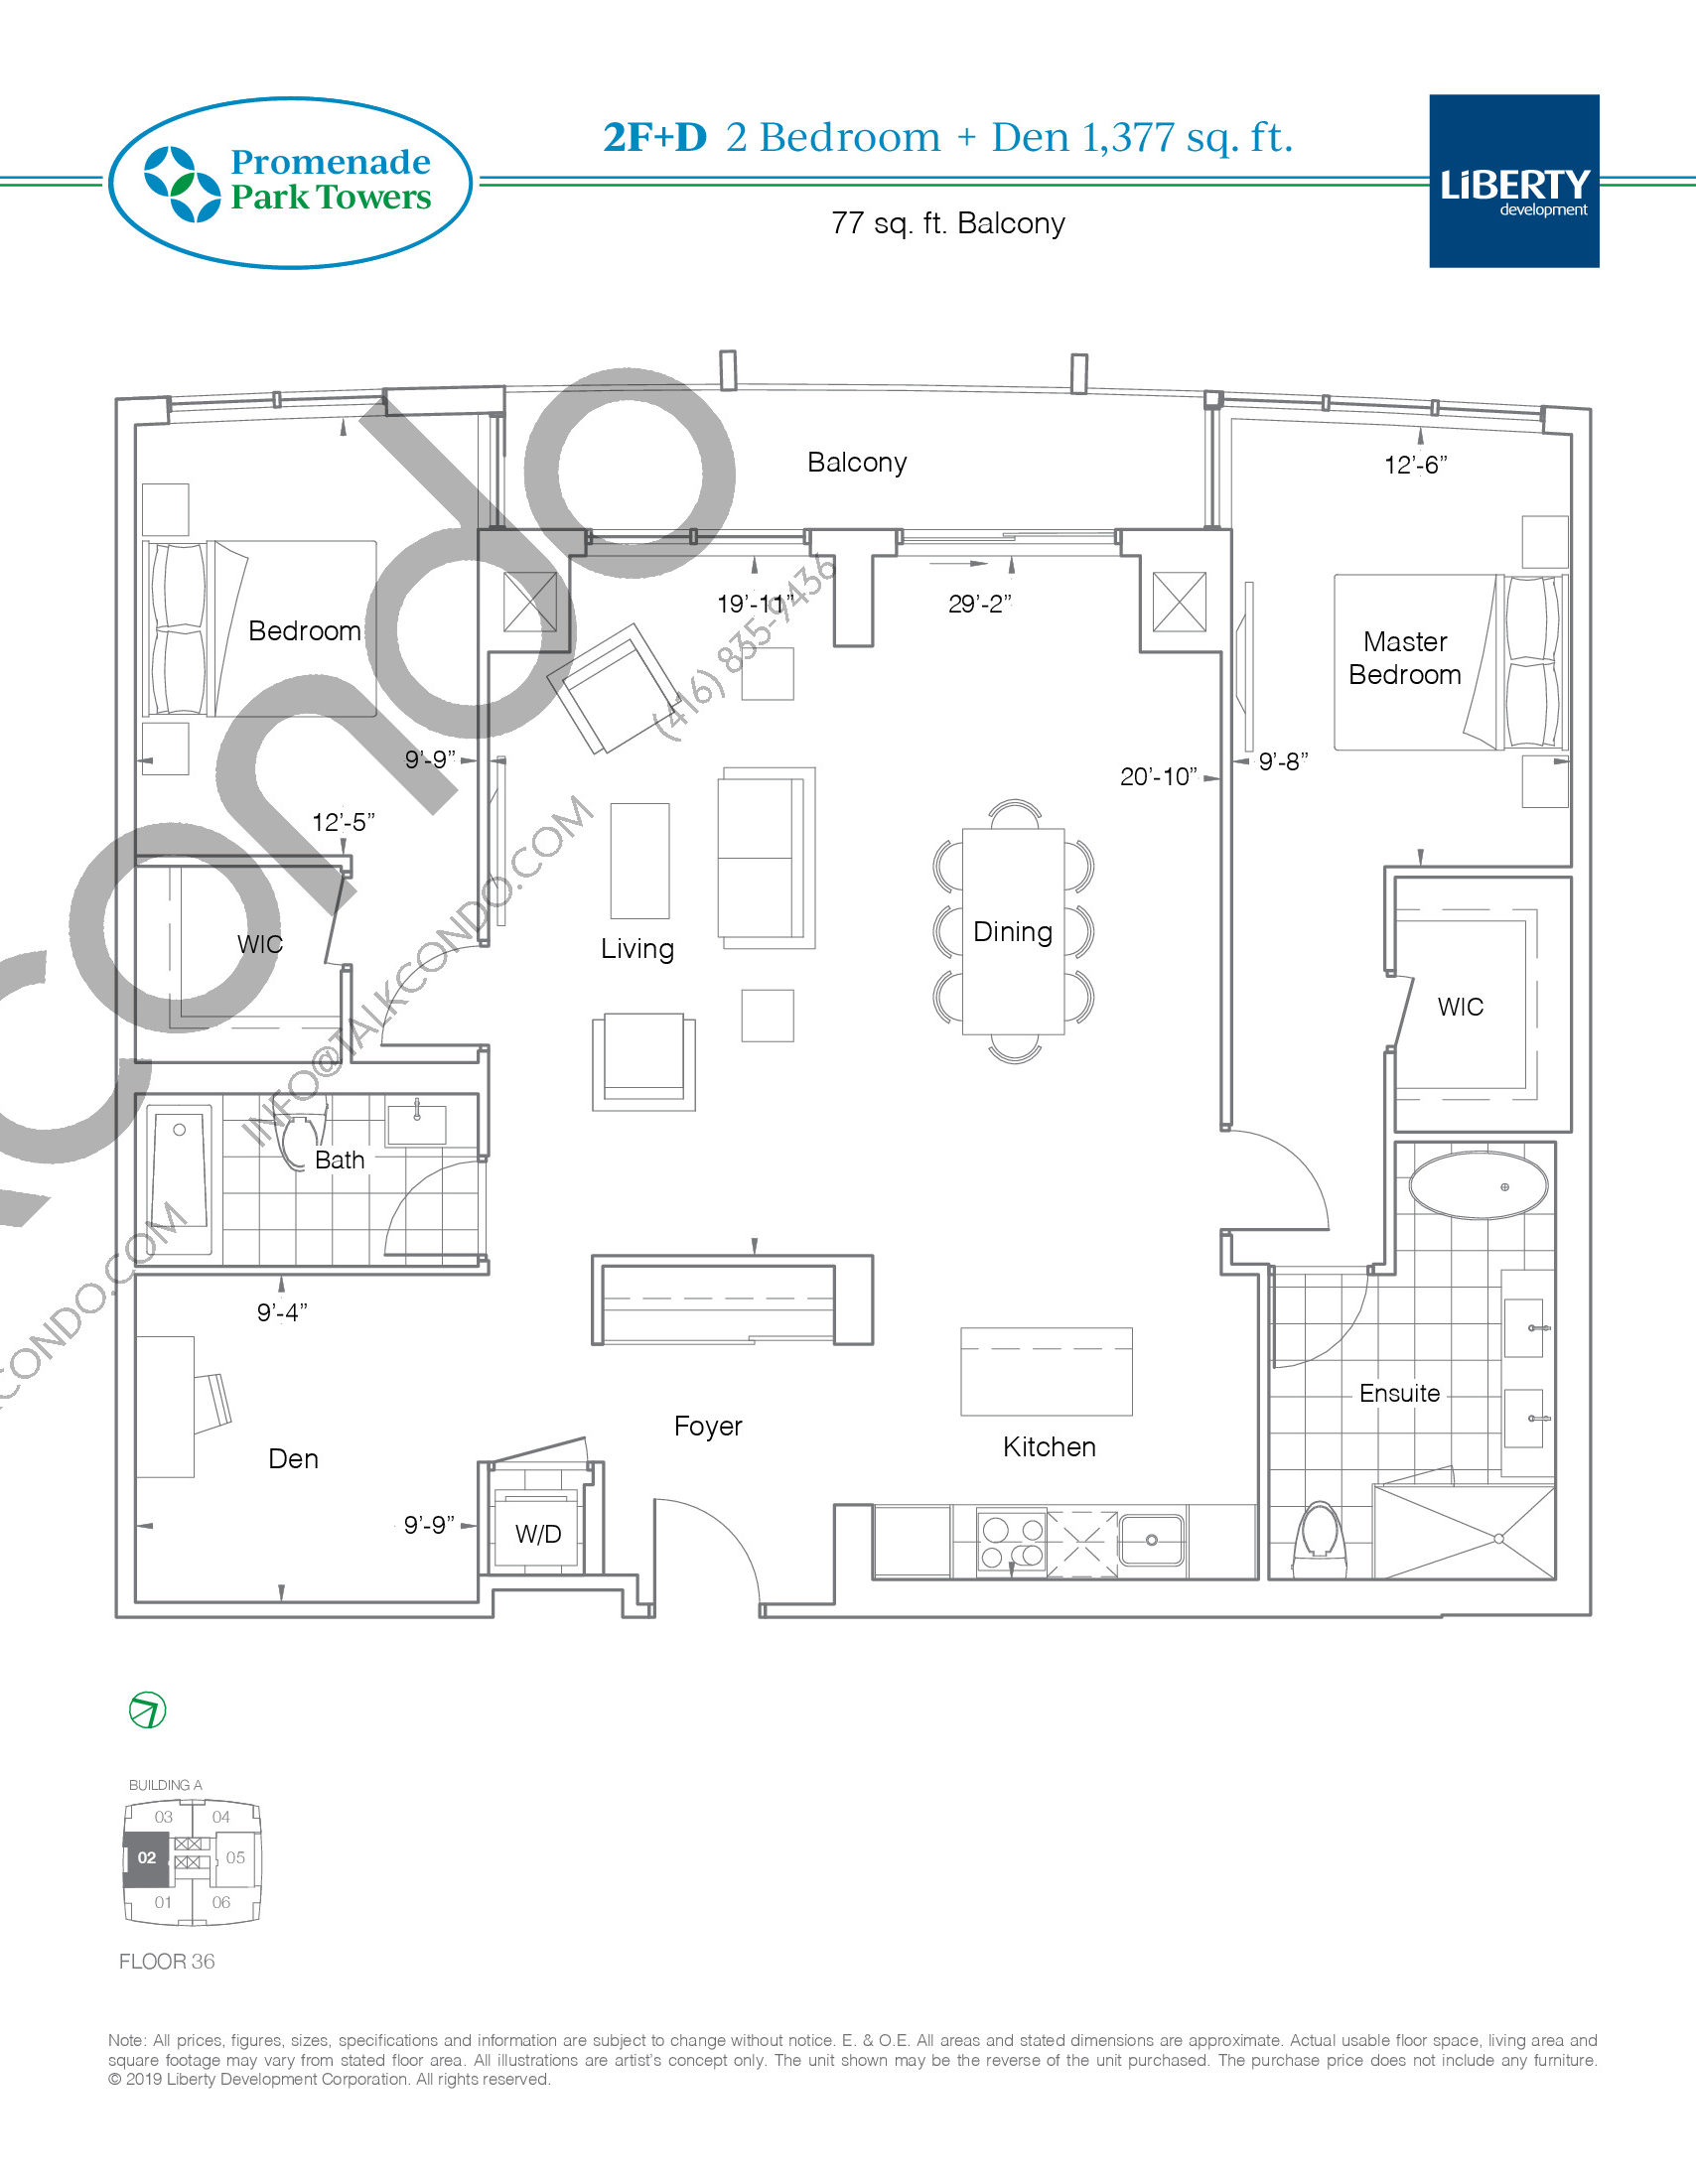 2F+D Floor Plan at Promenade Park Towers Condos - 1377 sq.ft